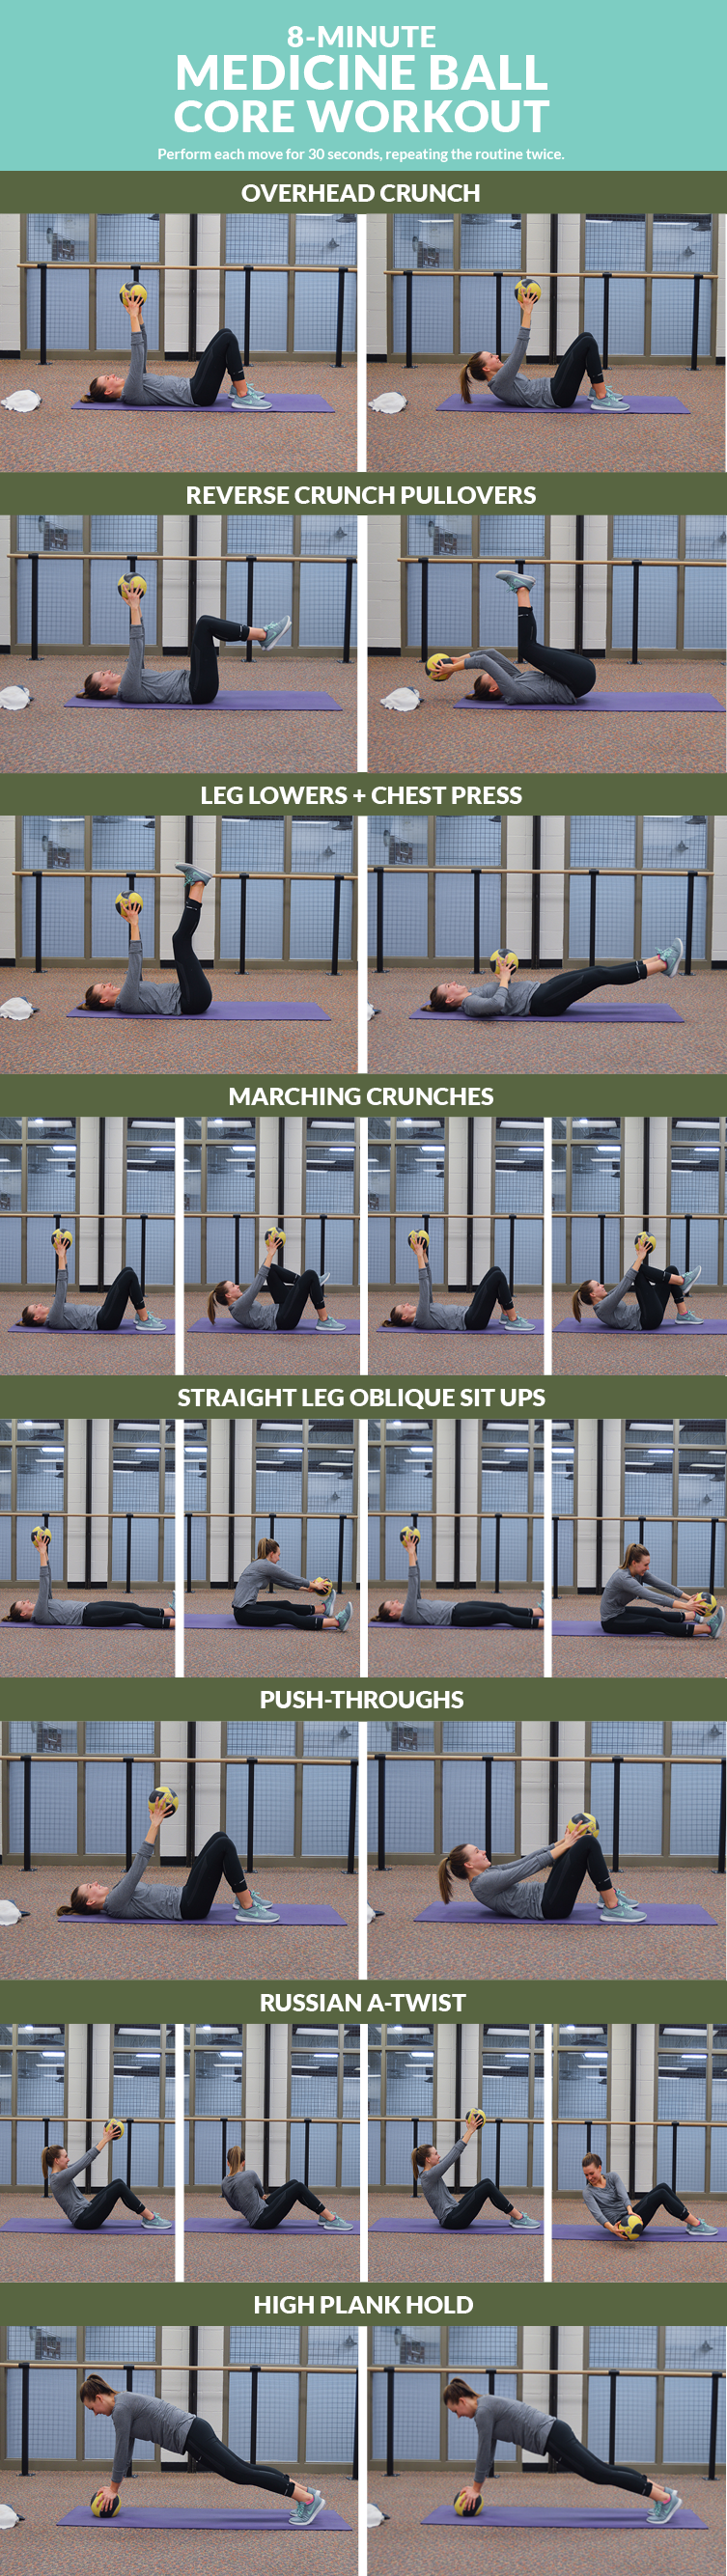 8-Minute Medicine Ball Core Workout #coreworkouts